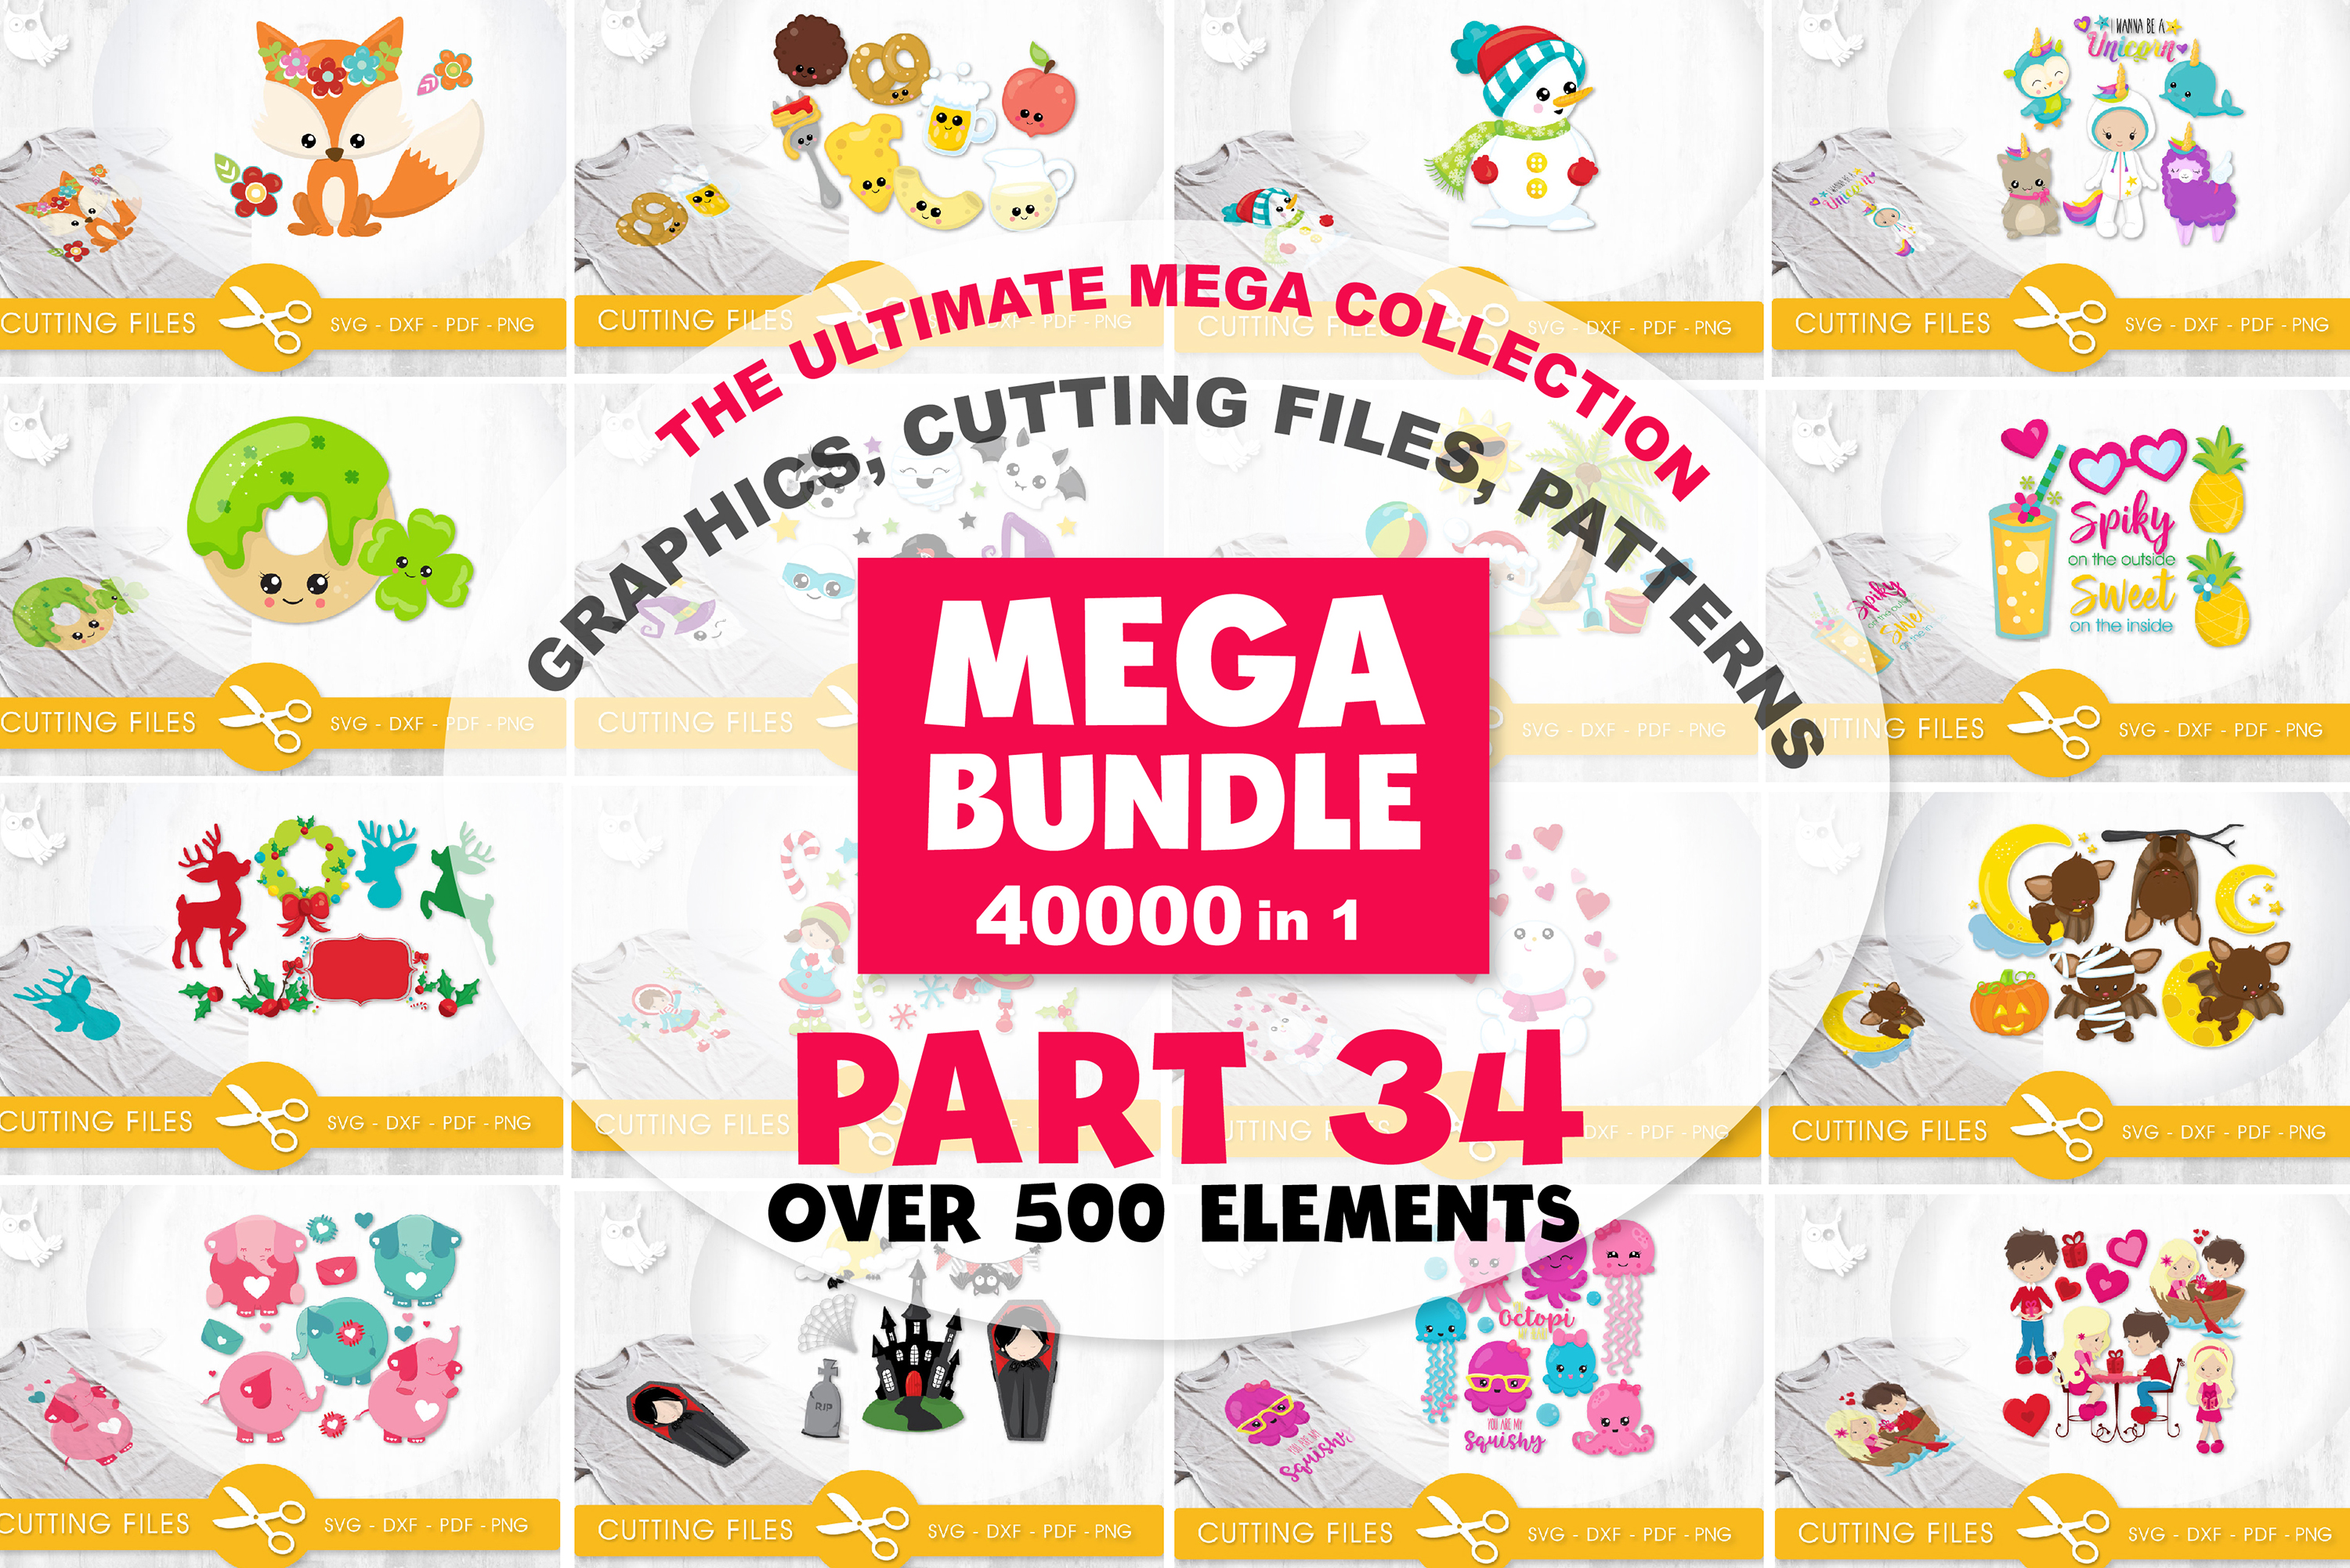 MEGA BUNDLE PART34 - 40000 in 1 Full Collection example image 1